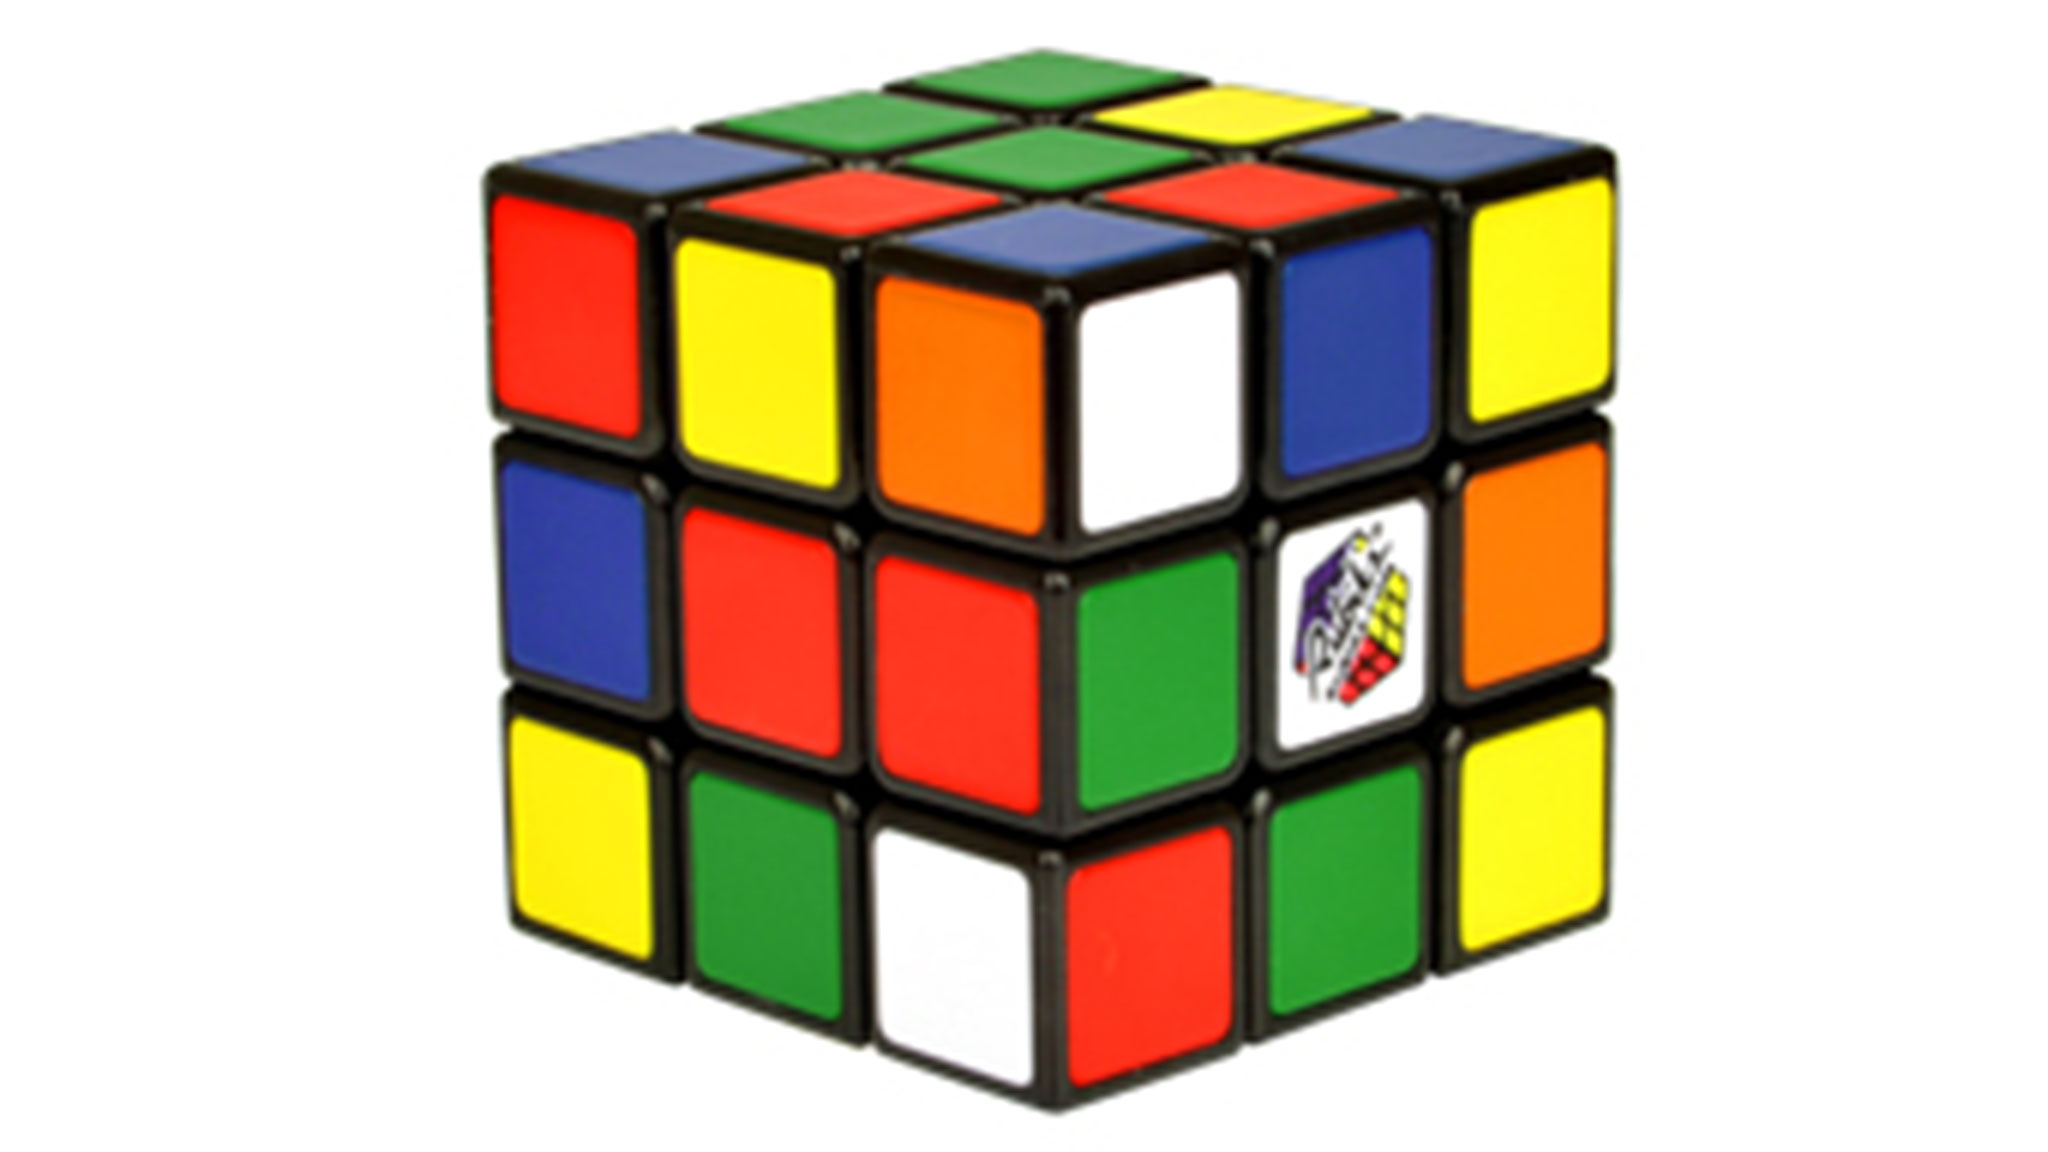 How the rubiks cube became a design classic that baffled millions